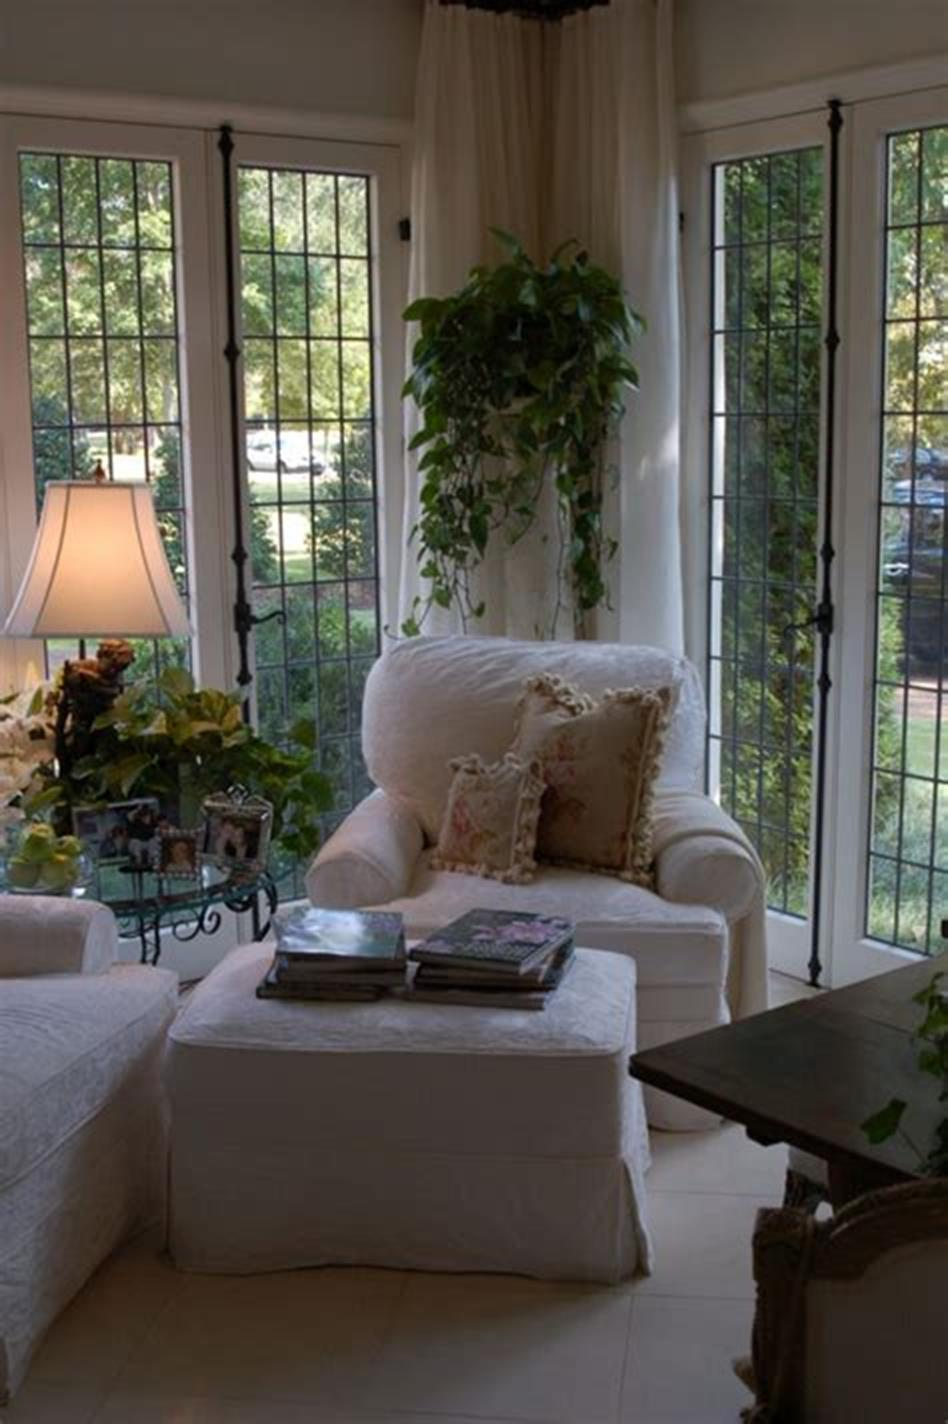 50 Most Popular Affordable Sunroom Design Ideas on a Budget 13